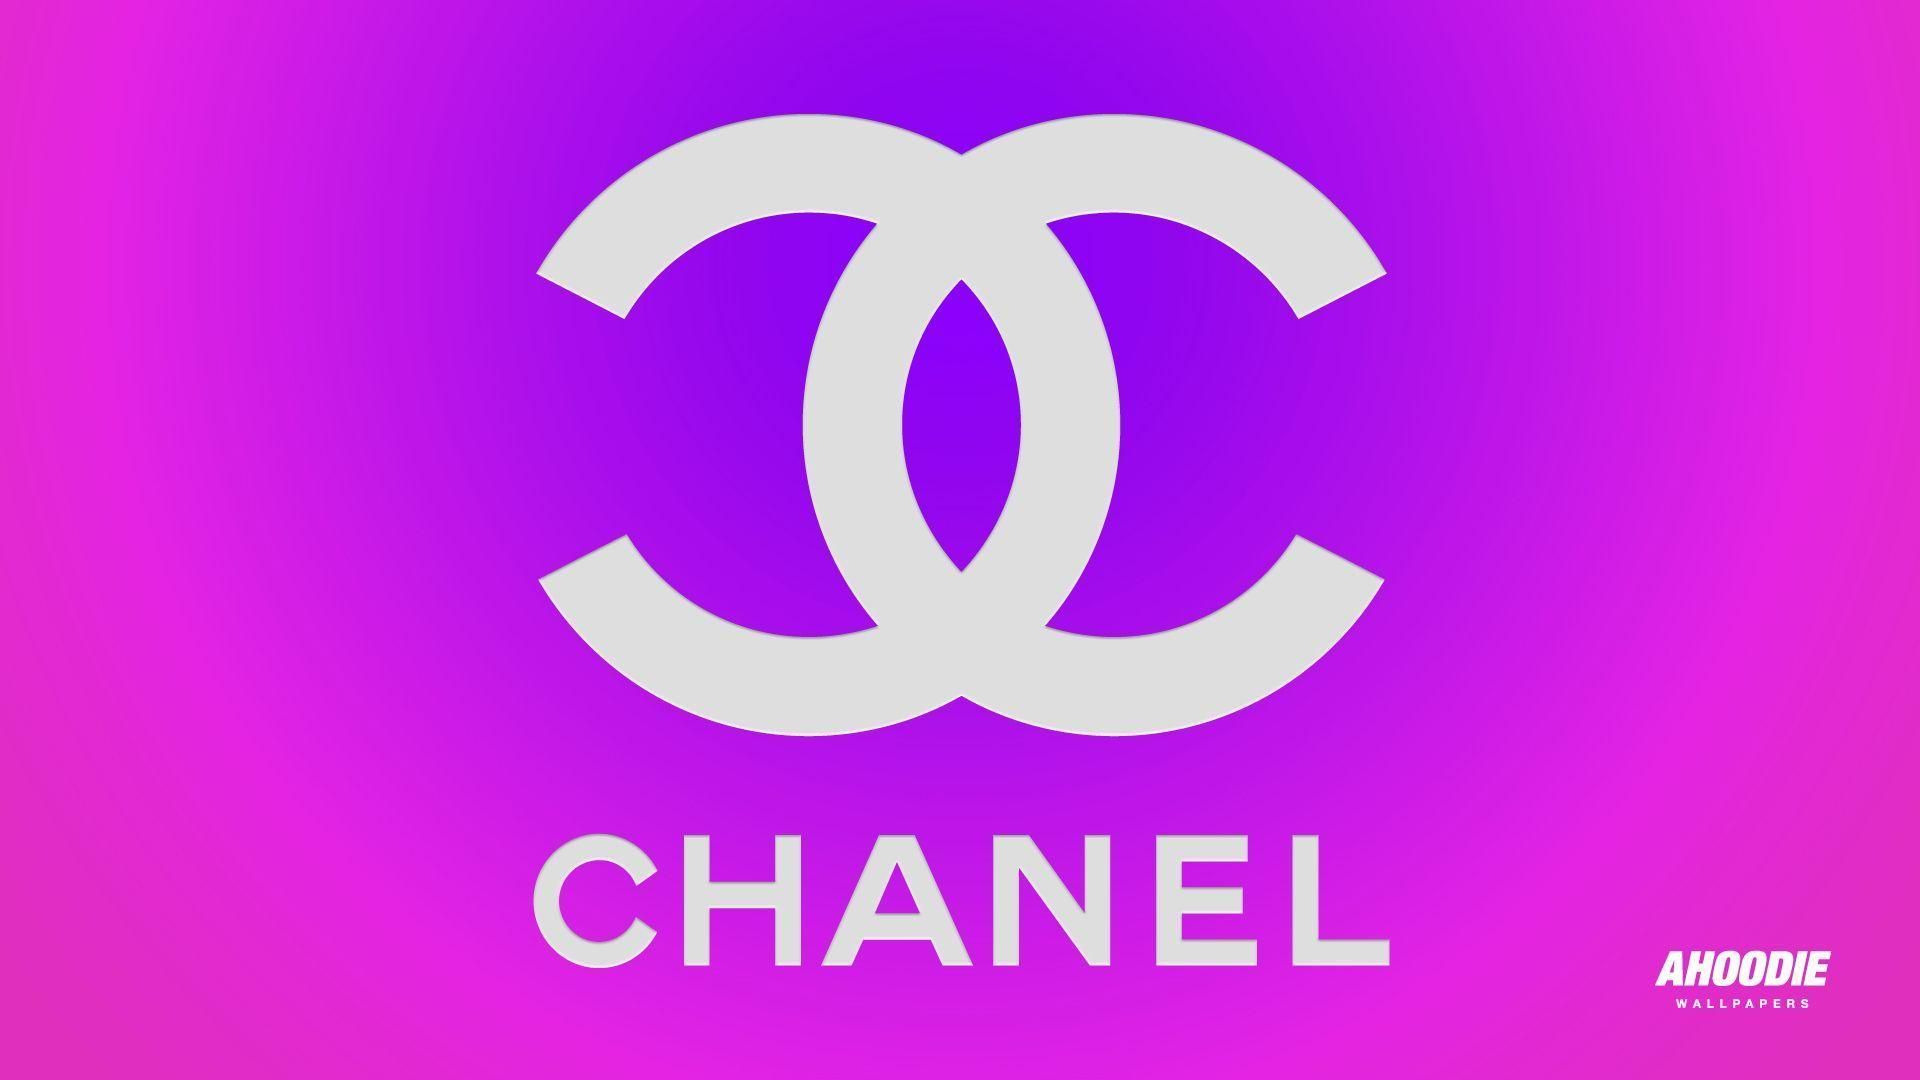 Iphone wallpaper tumblr chanel - Wallpapers For Chanel Wallpaper Tumblr